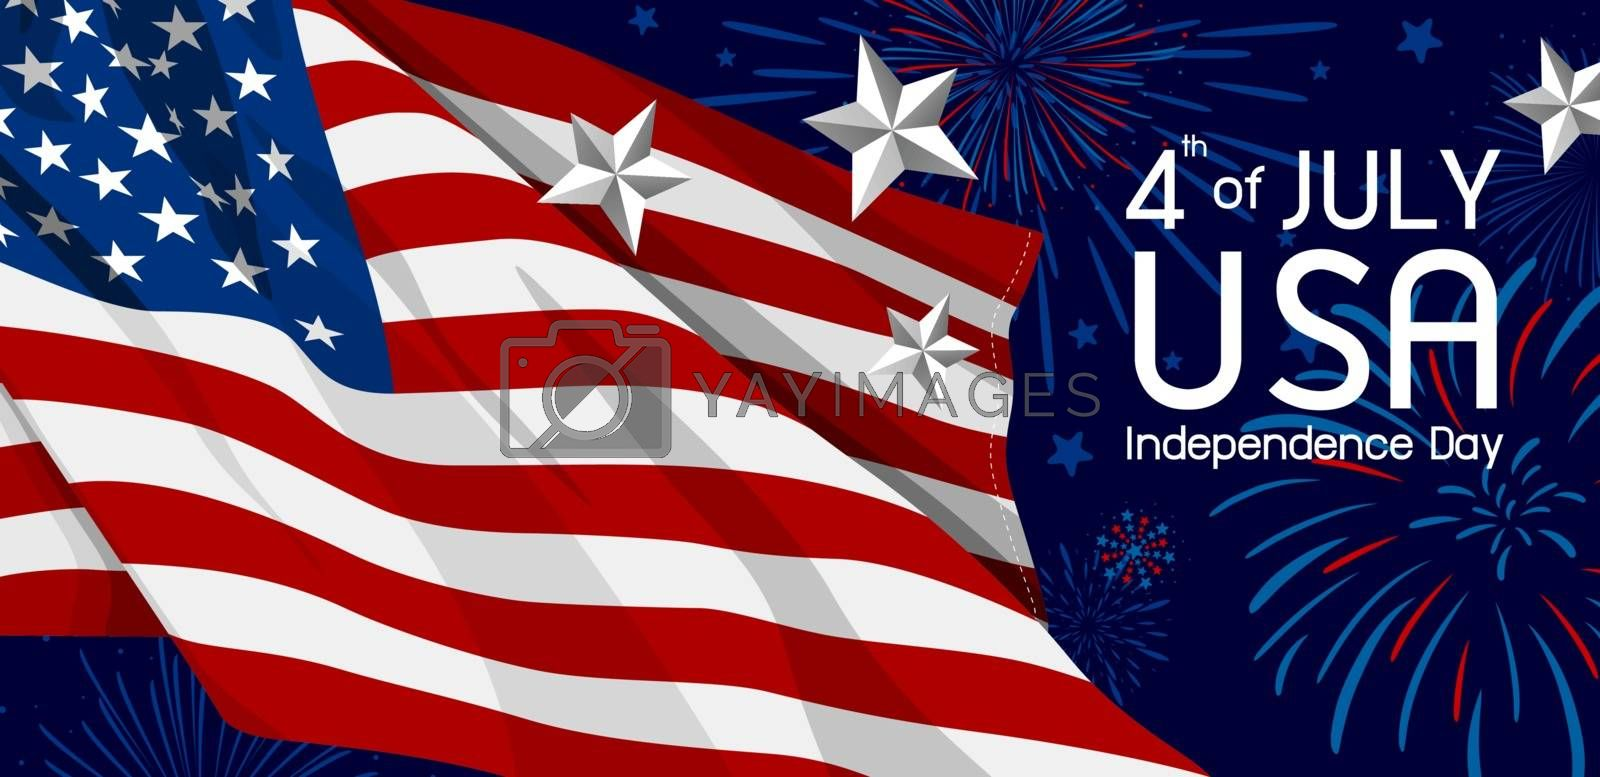 4th of july USA Independence day banner vector illustration